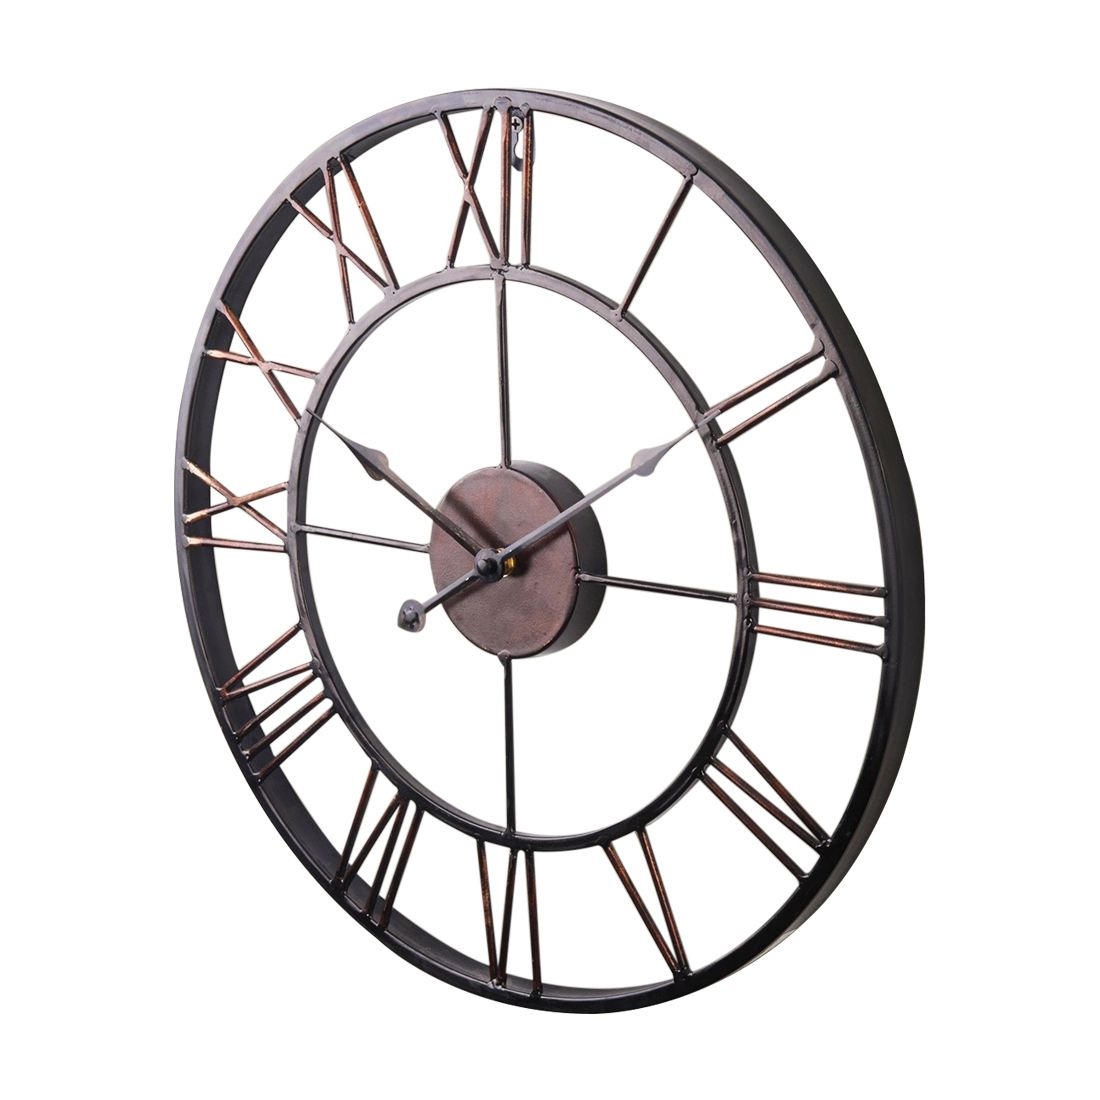 Statement Wall Clocks Nocm Extra Large Vintage Style Statement Metal Wall Clock